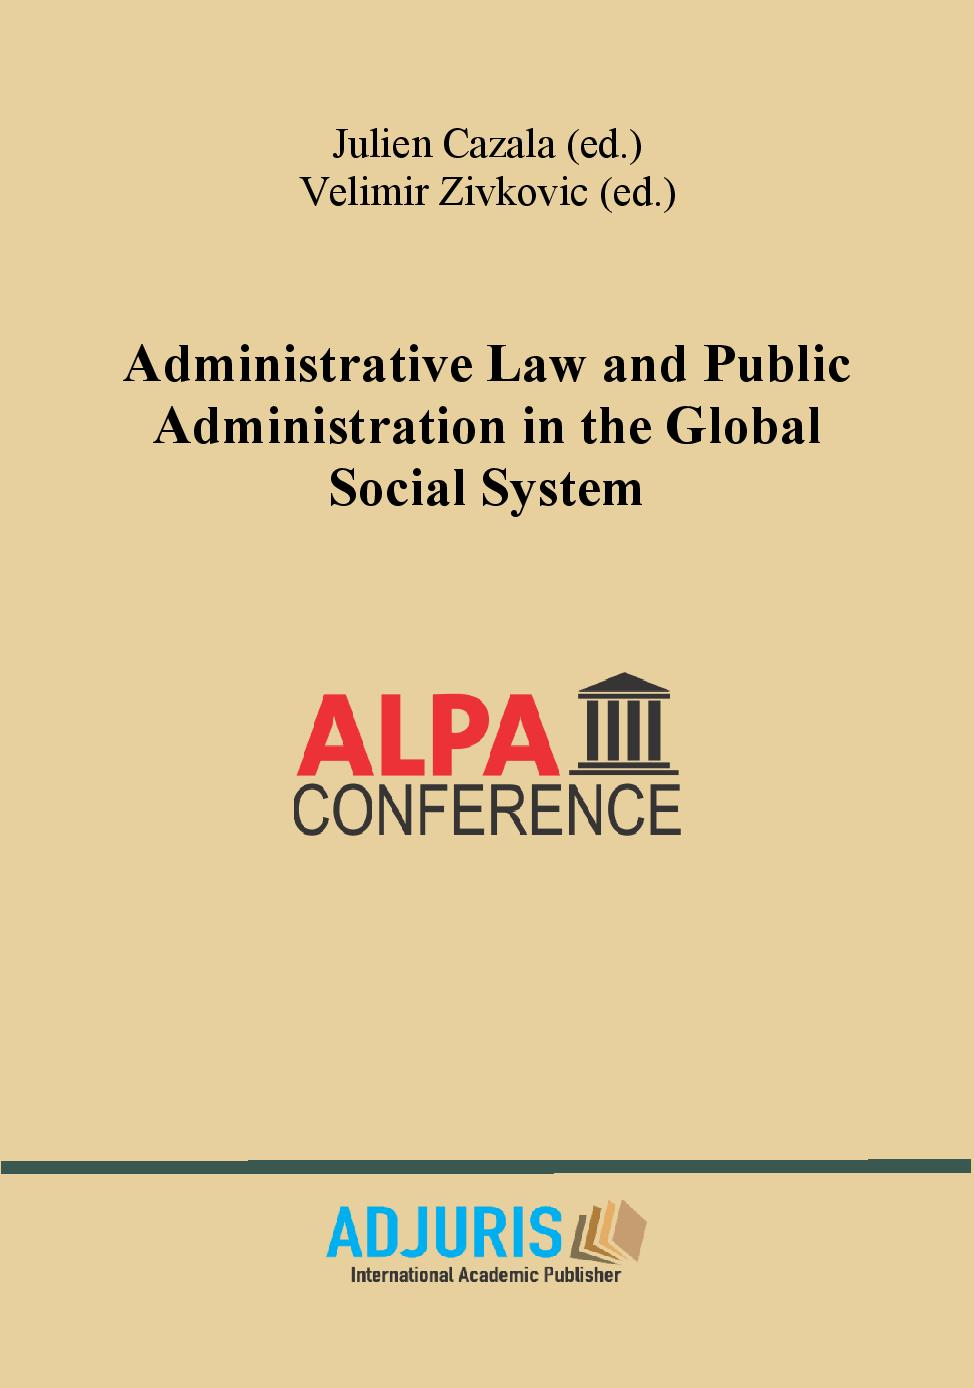 Administrative Law and Public Administration in the Global Social System